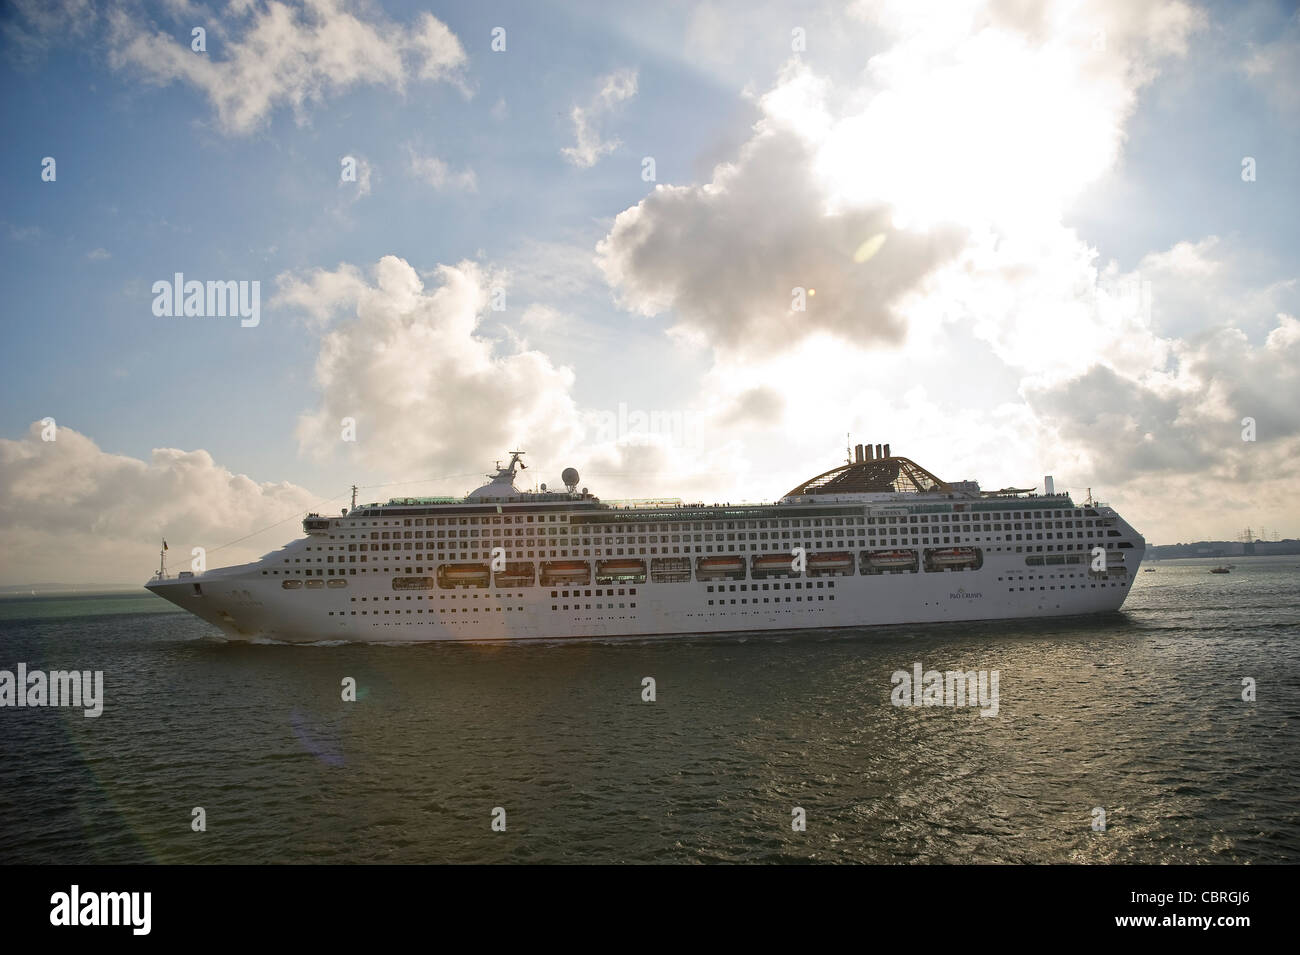 A large Cruise ship on the Solent departing Southampton Docks, Hampshire, UK - Stock Image